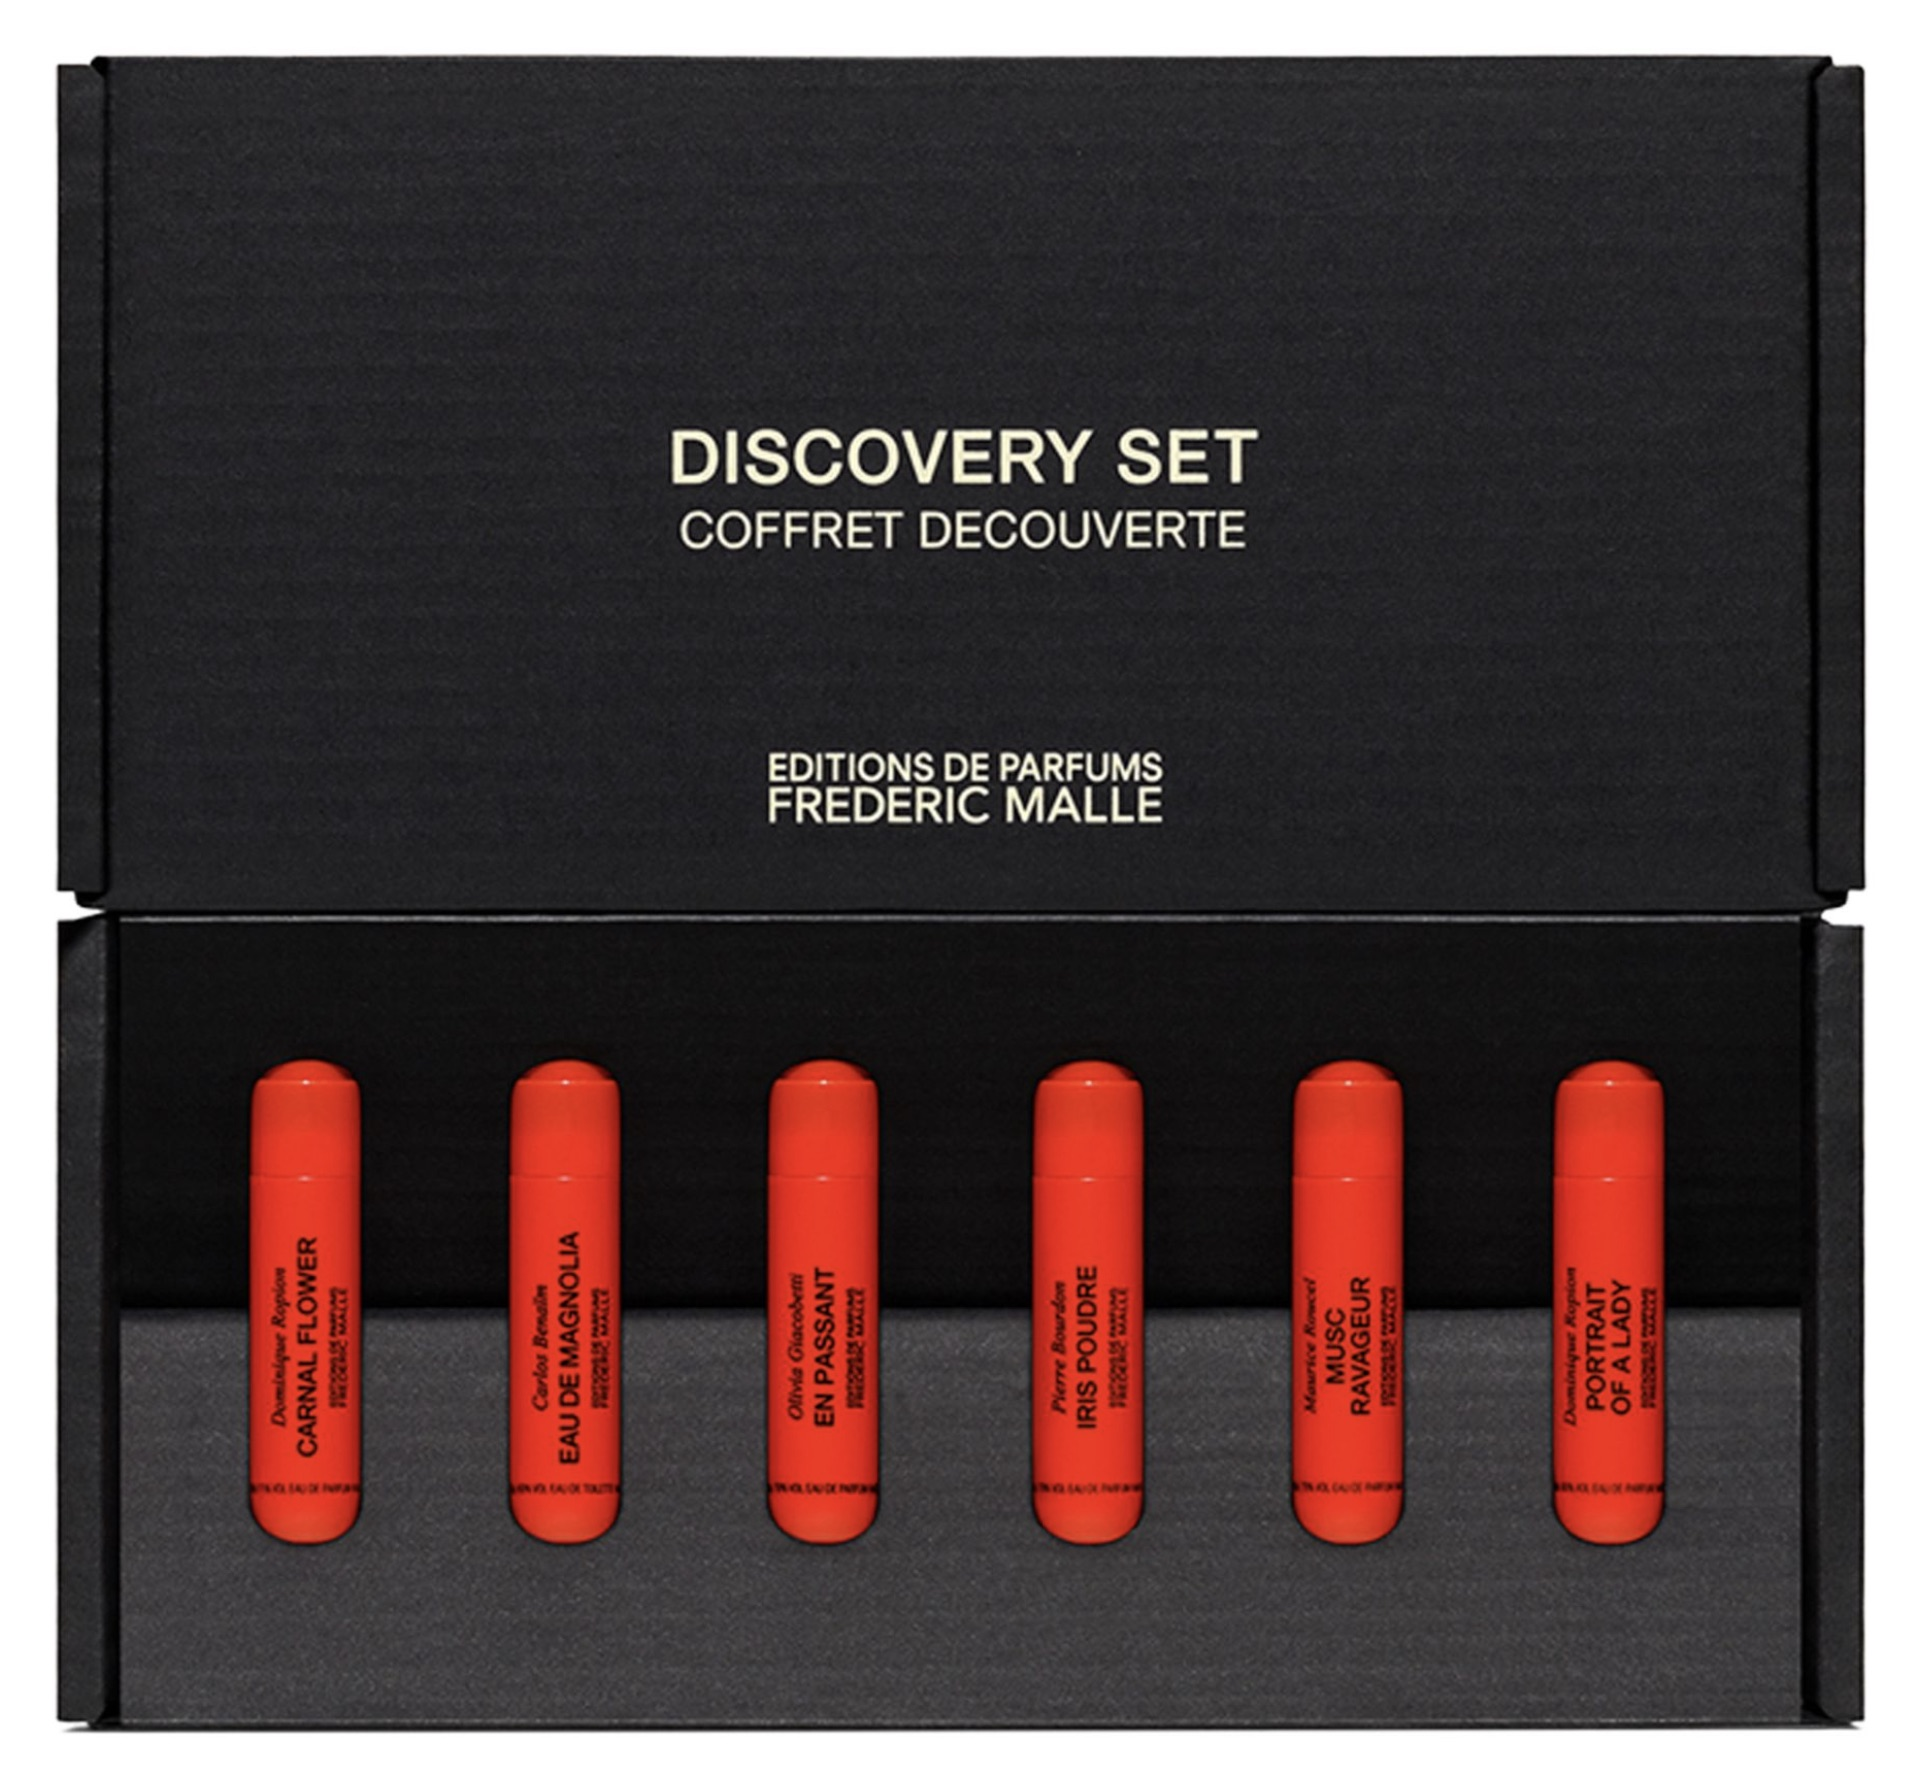 frederic-malle-fragrance-discovery-set-front-row-edit